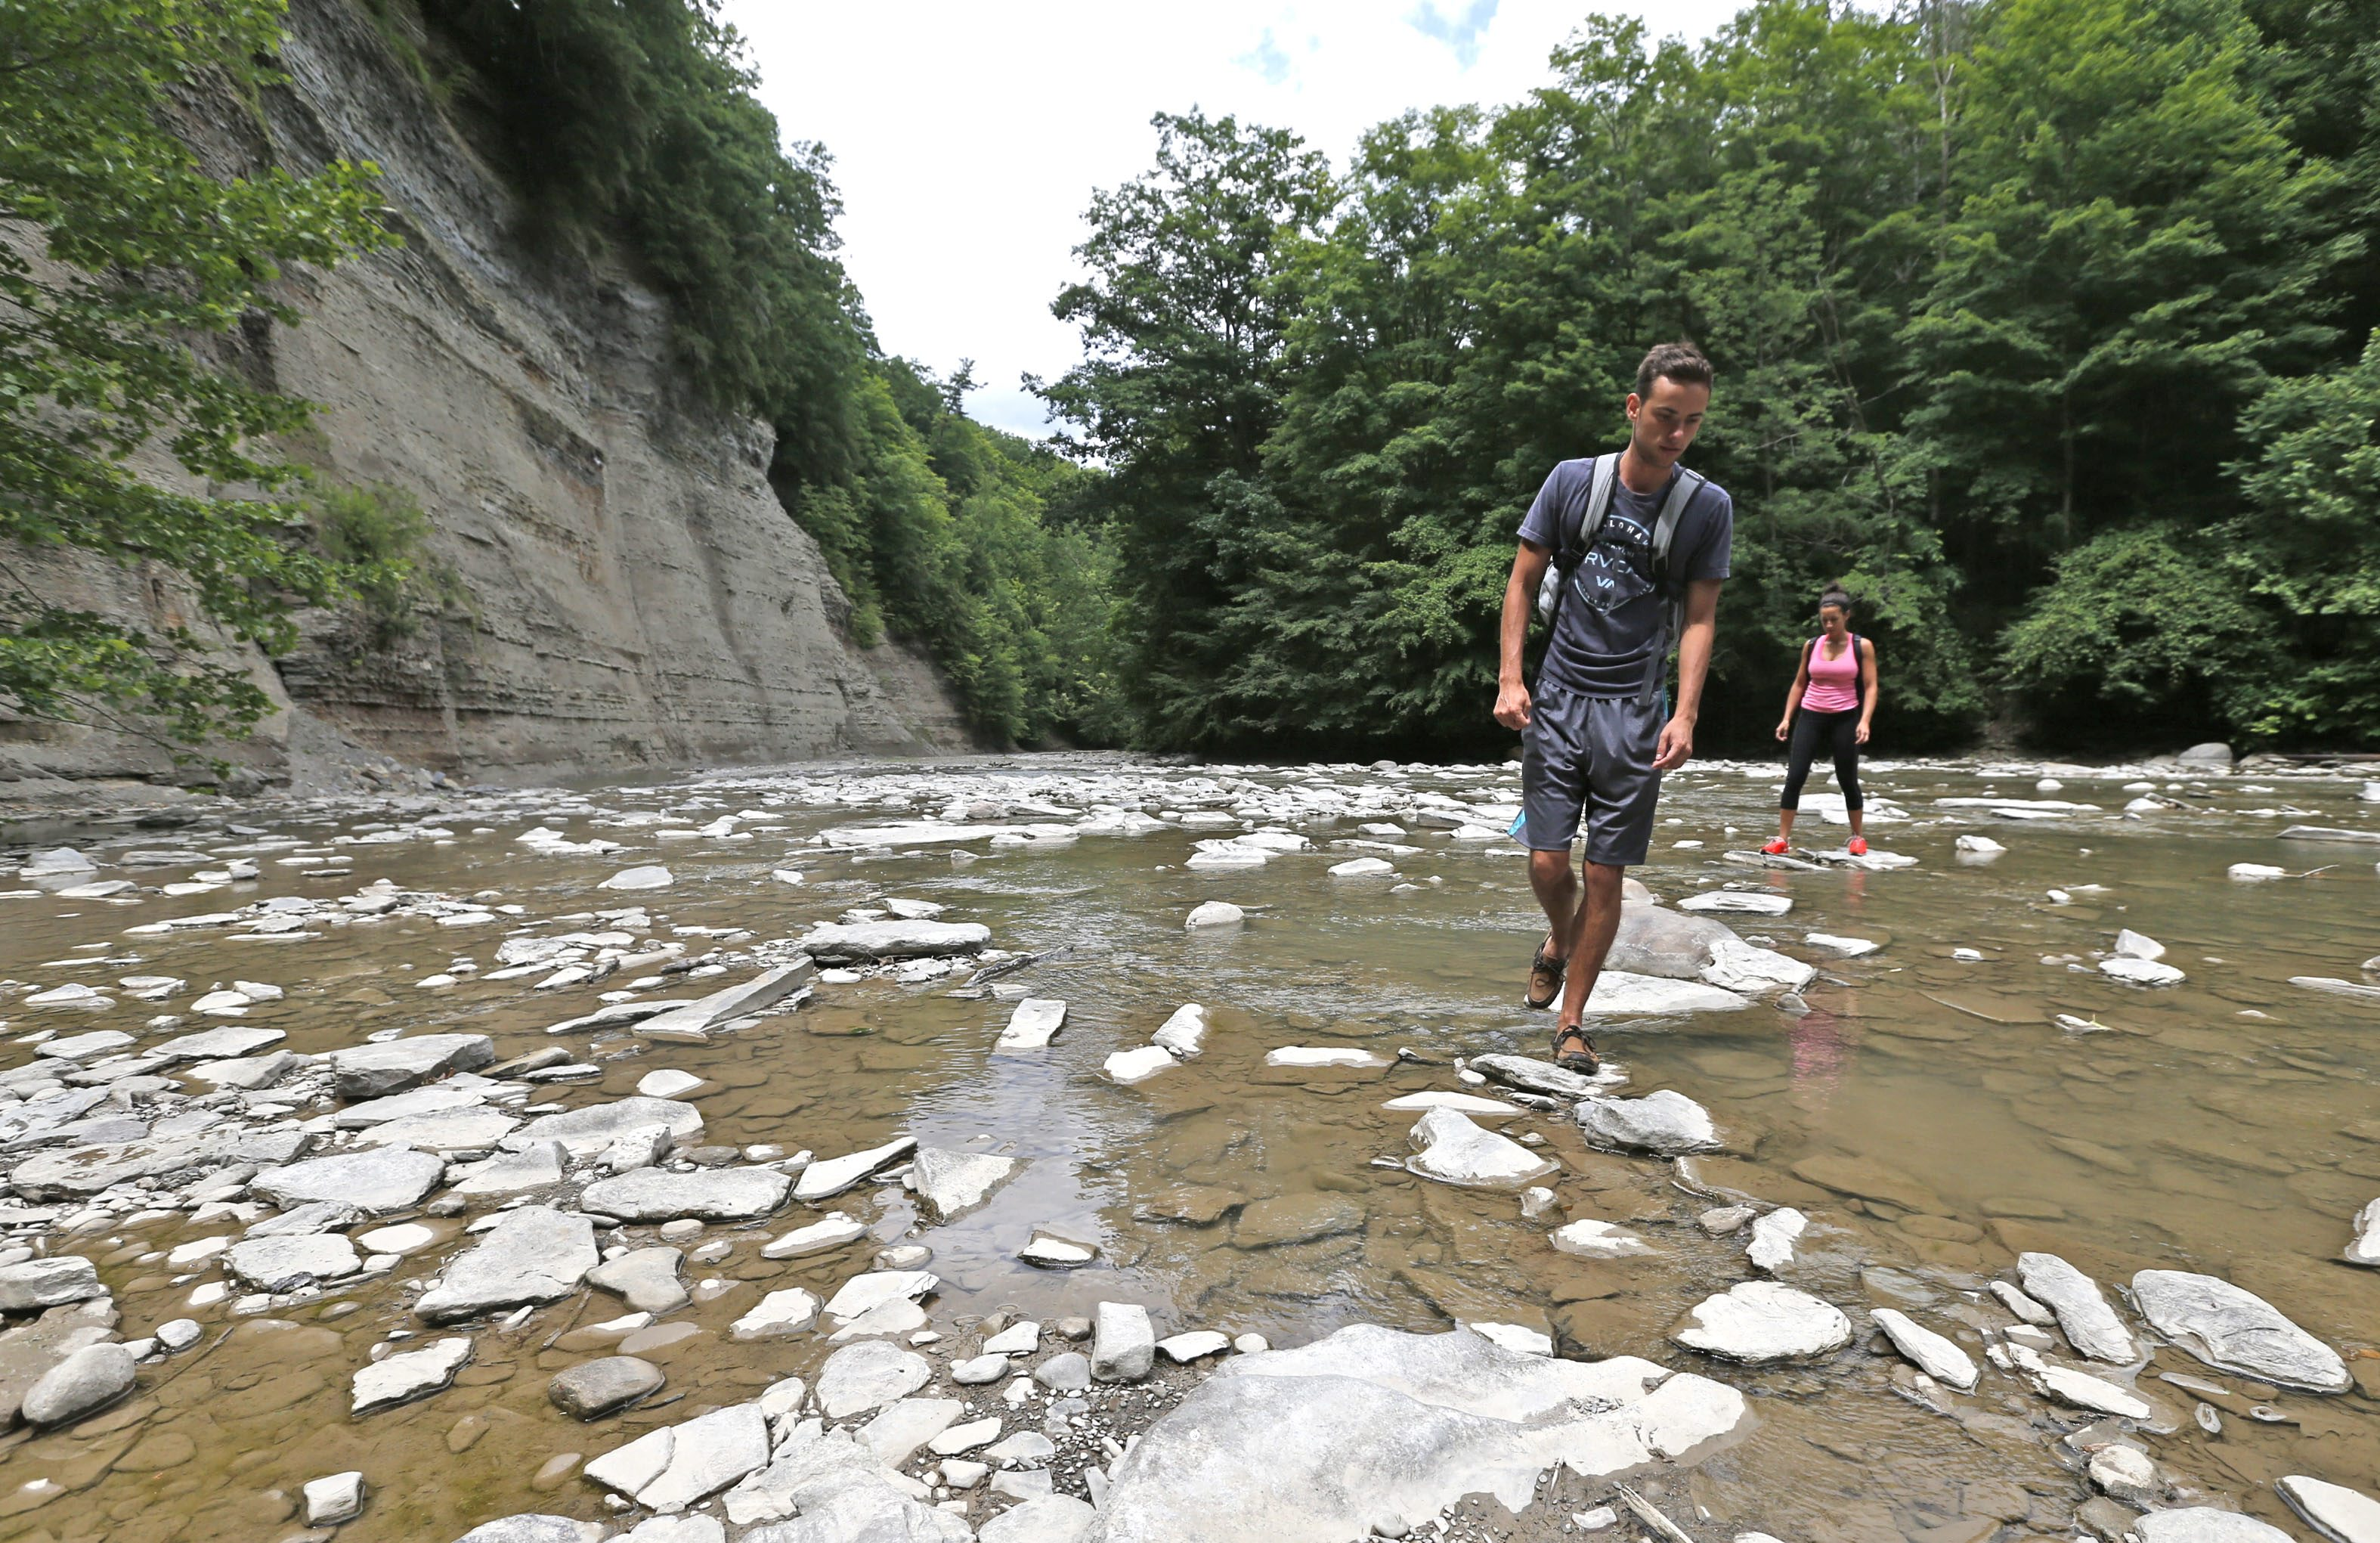 Hiking companions Zachary Szafranek of Buffalo and Jessica Pieters of Amherst explore the Cattaraugus Creek gorge at Zoar Valley.  (Robert Kirkham/Buffalo News)